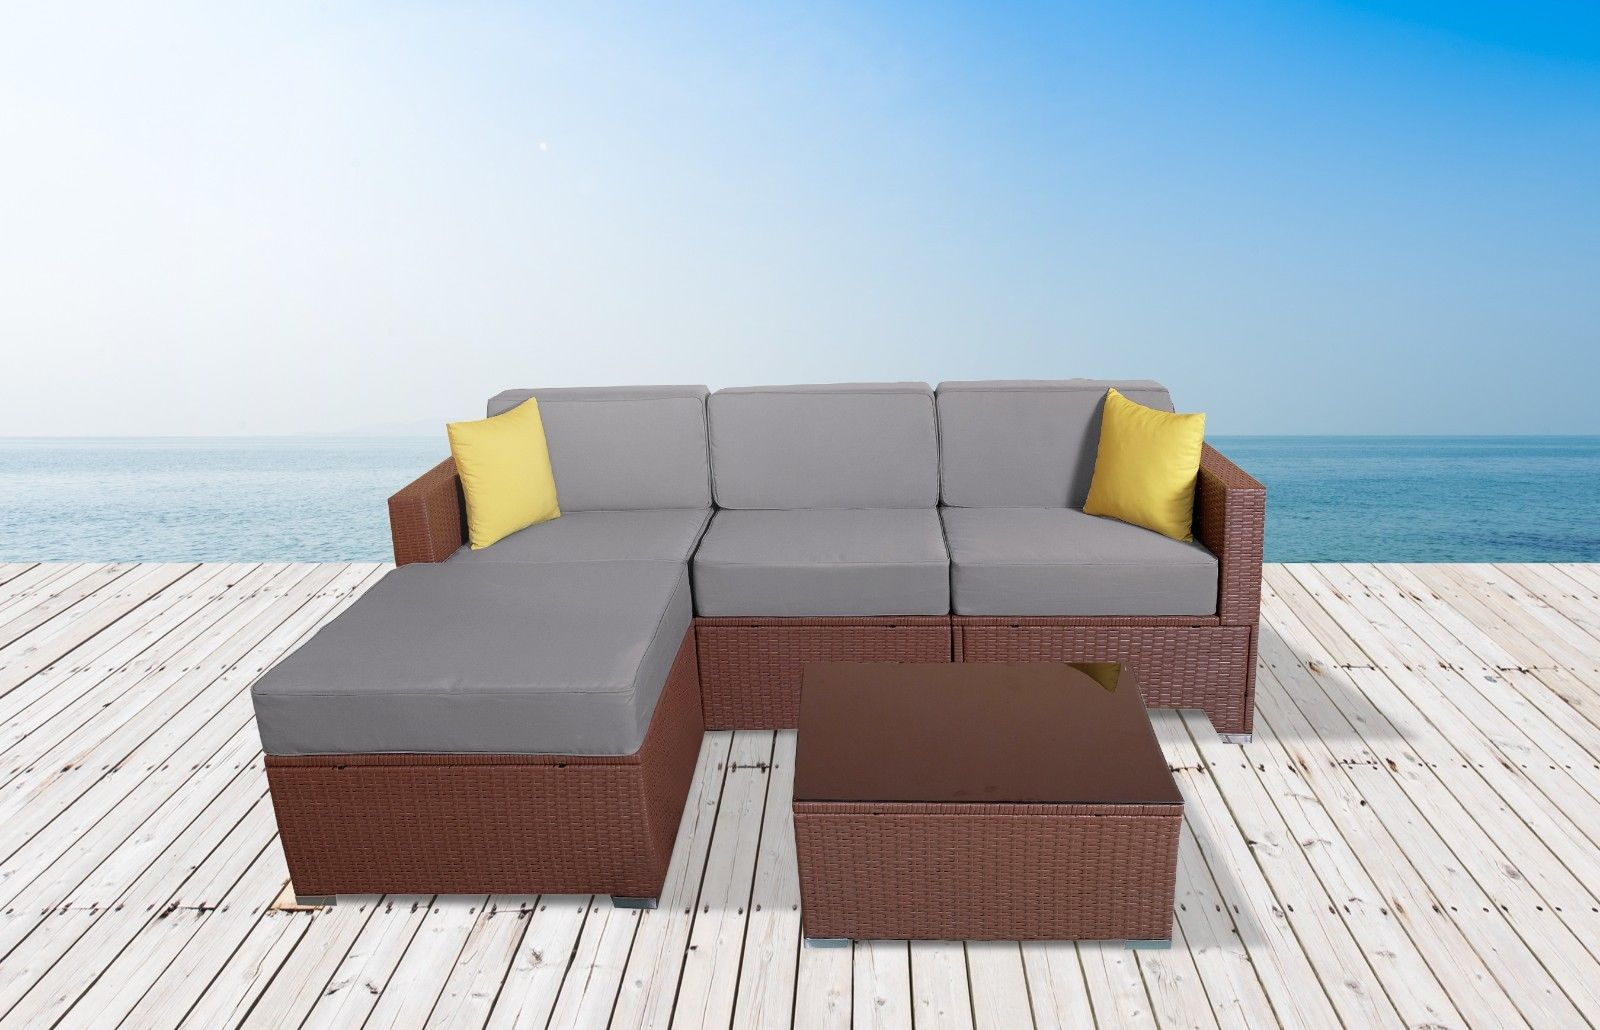 Enjoyable Mcombo 5Pc Outdoor Rattan Sofa Wicker Chair Patio Furniture With Table Sectional Set Grey 6081 5Pc Ey Machost Co Dining Chair Design Ideas Machostcouk